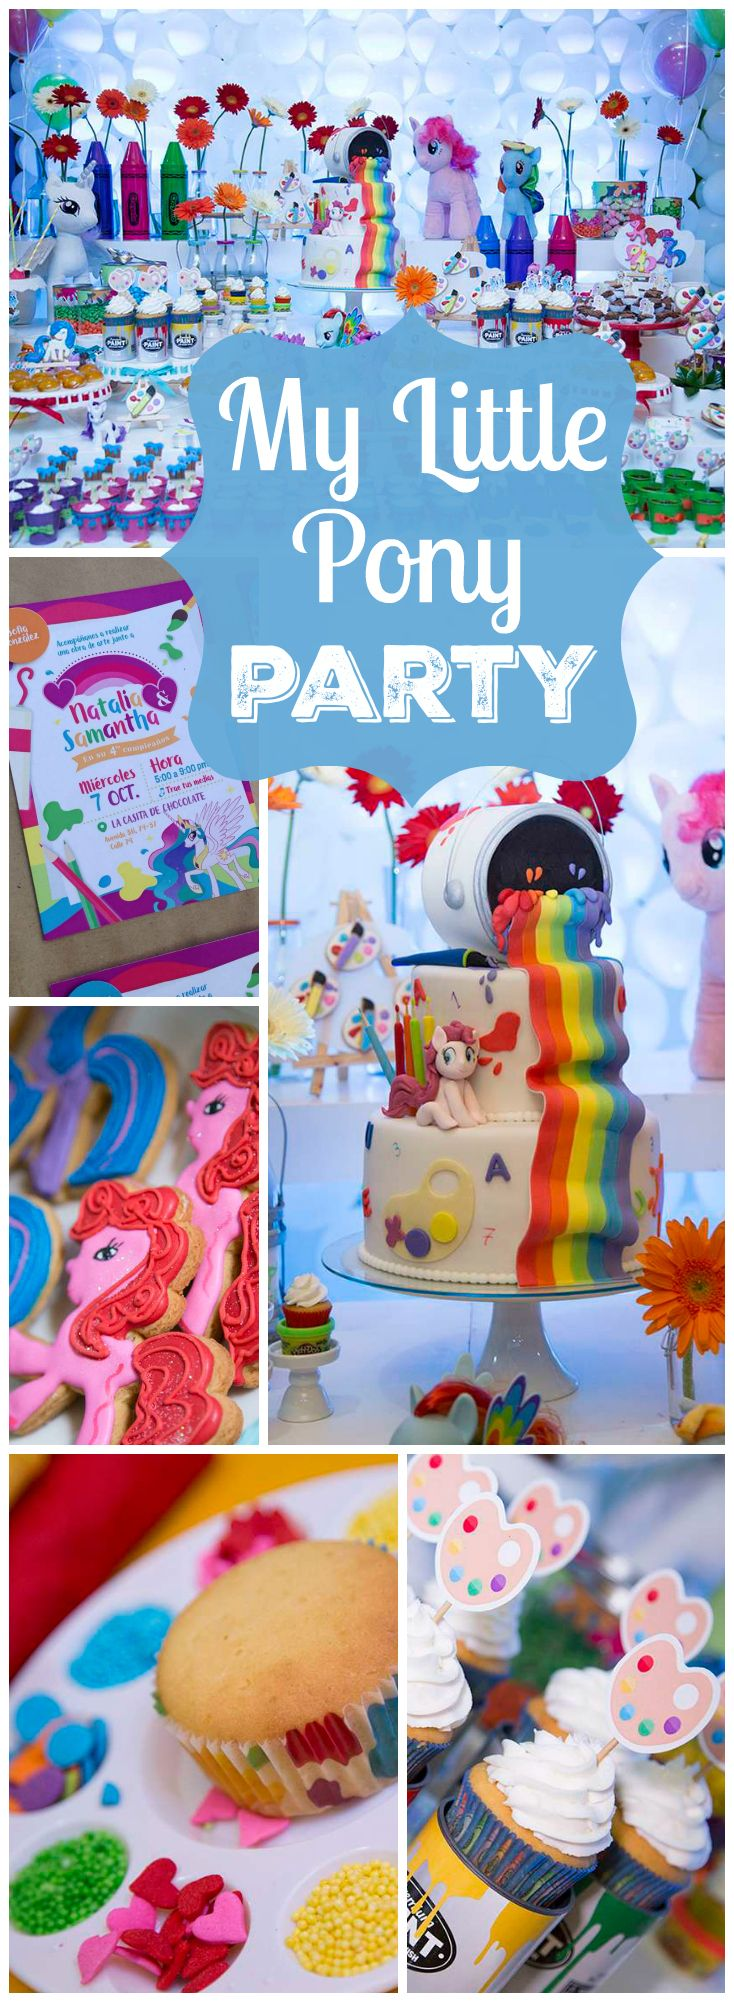 191 best images about my little pony party ideas on for My little pony craft ideas